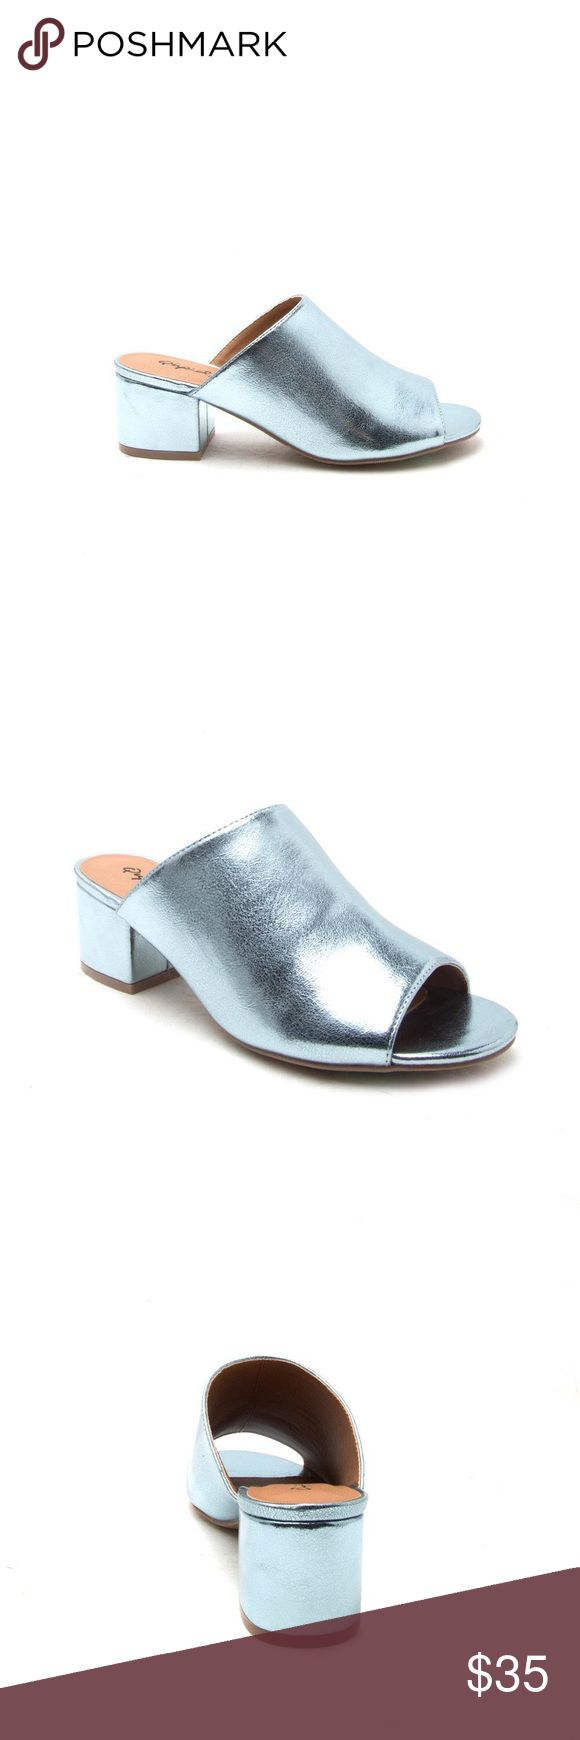 """Blue metallic block heel mule sandal - sz 9 Featured in Instyle! Sold out! The trend shoe this spring/summer! Sz 9, fits true to size. BRAND NEW IN BOX. Vegan leather. Aprox 2"""" heel. Qupid Shoes Sandals"""